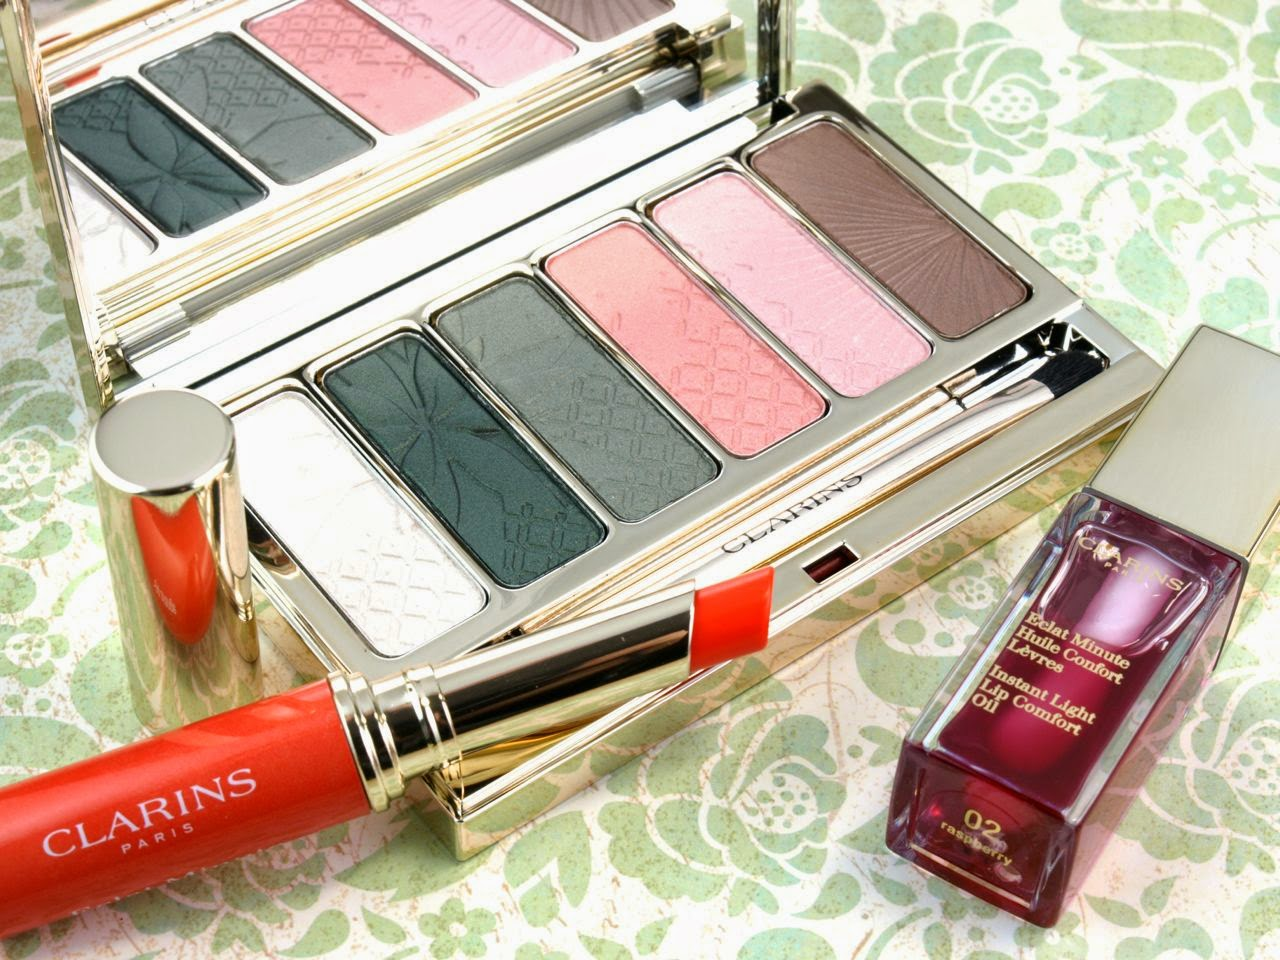 Clarins Spring 2015 Garden Eden Collection: Review and Swatches